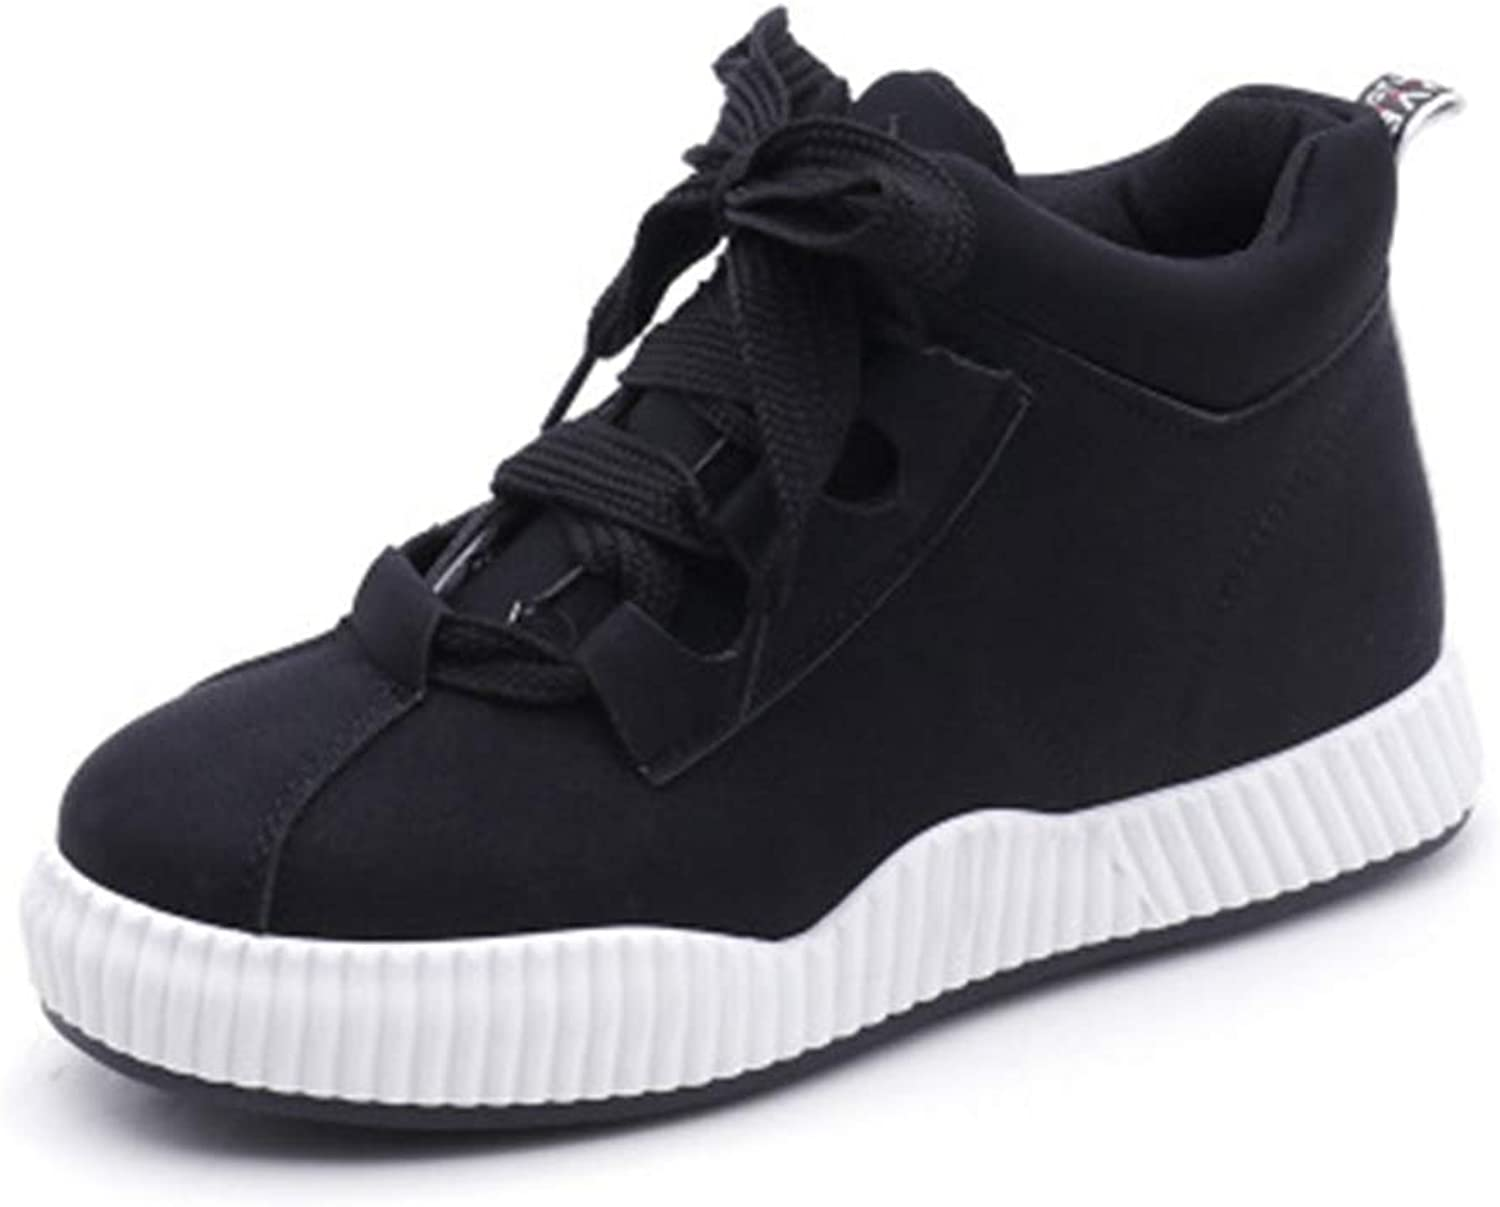 Bon Soir Fashion Casual Walking shoes Lightweight Athletic Sneakers for Couple